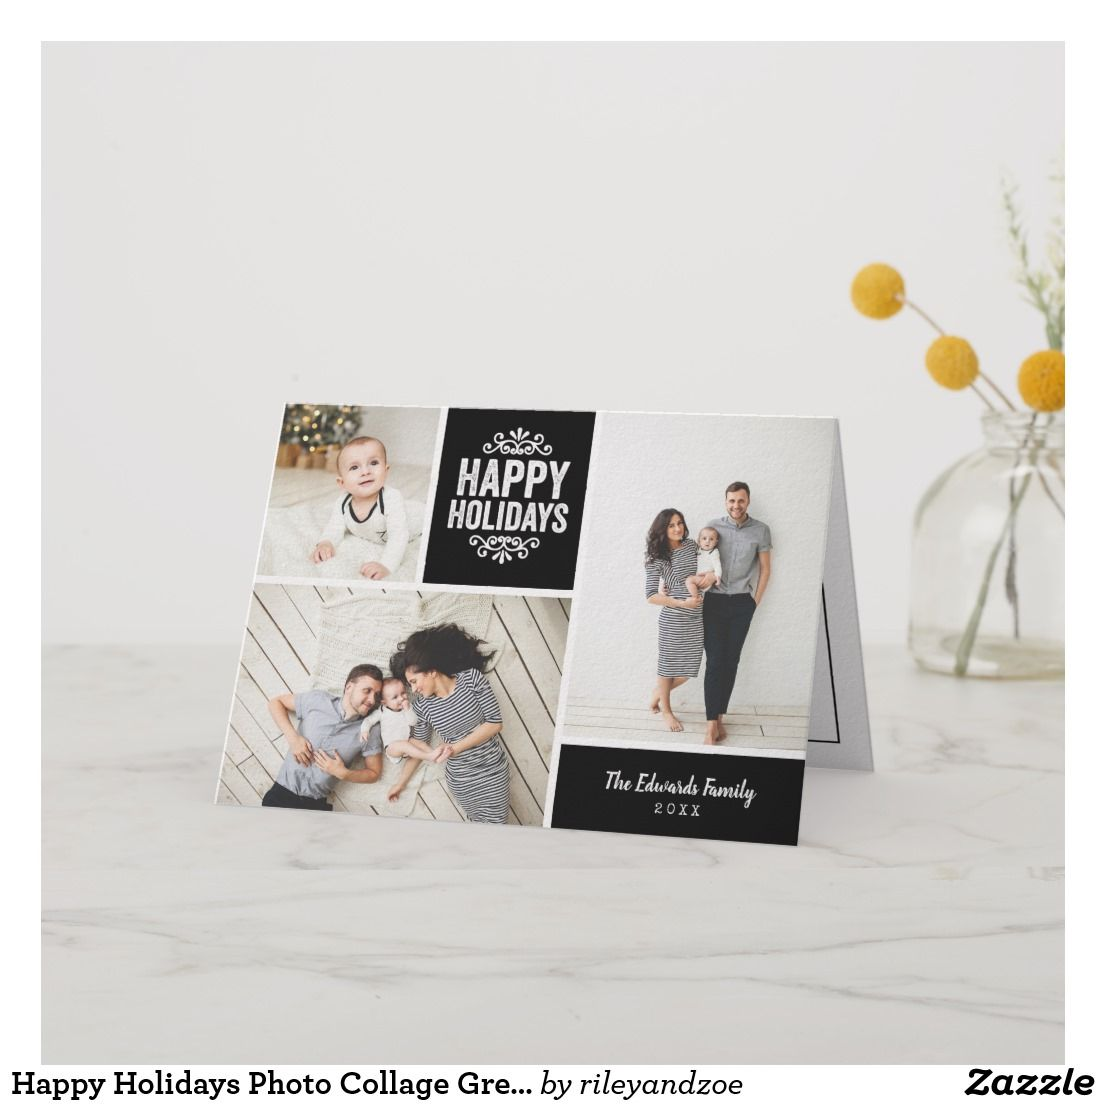 Happy Holidays Photo Collage Greeting Card Zazzle Com Happy Holidays Photo Modern Christmas Cards Holiday Design Card